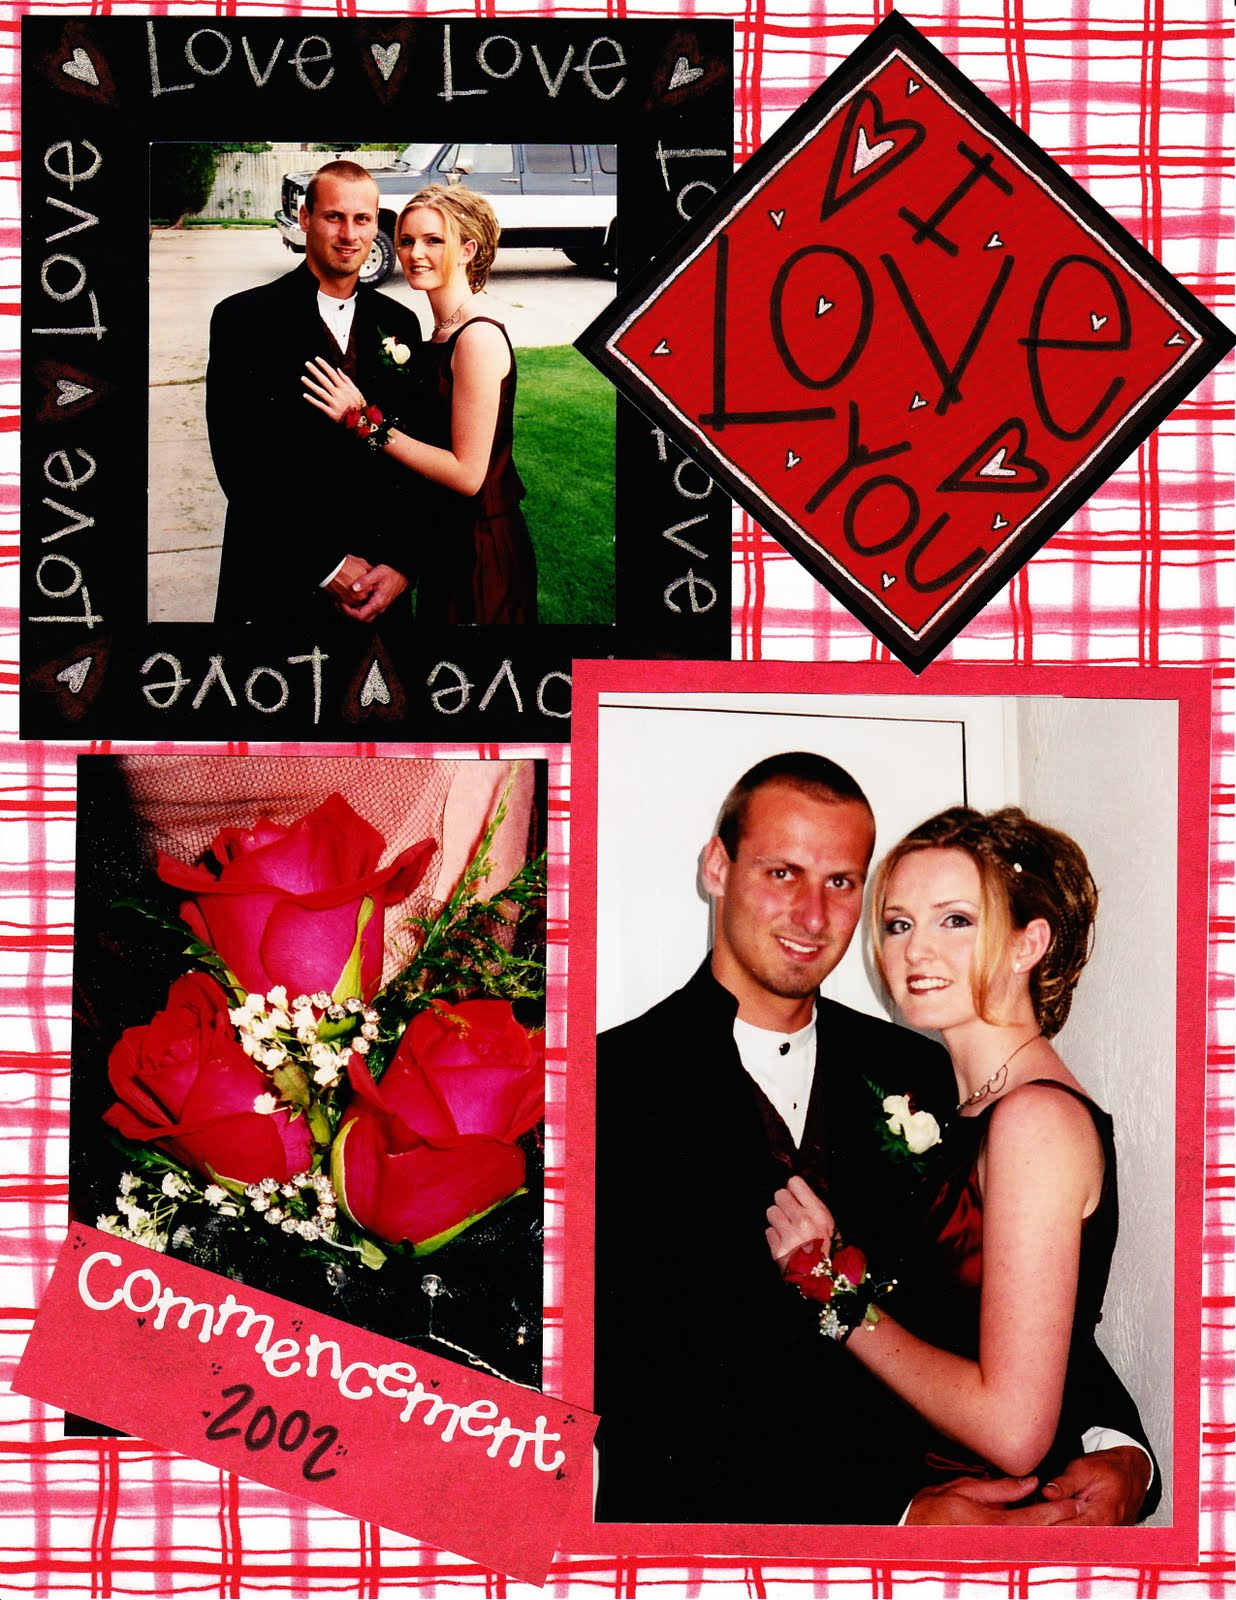 13 Awesome Scrapbook Ideas For Boyfriend ( 6th Idea Is Very Personal)